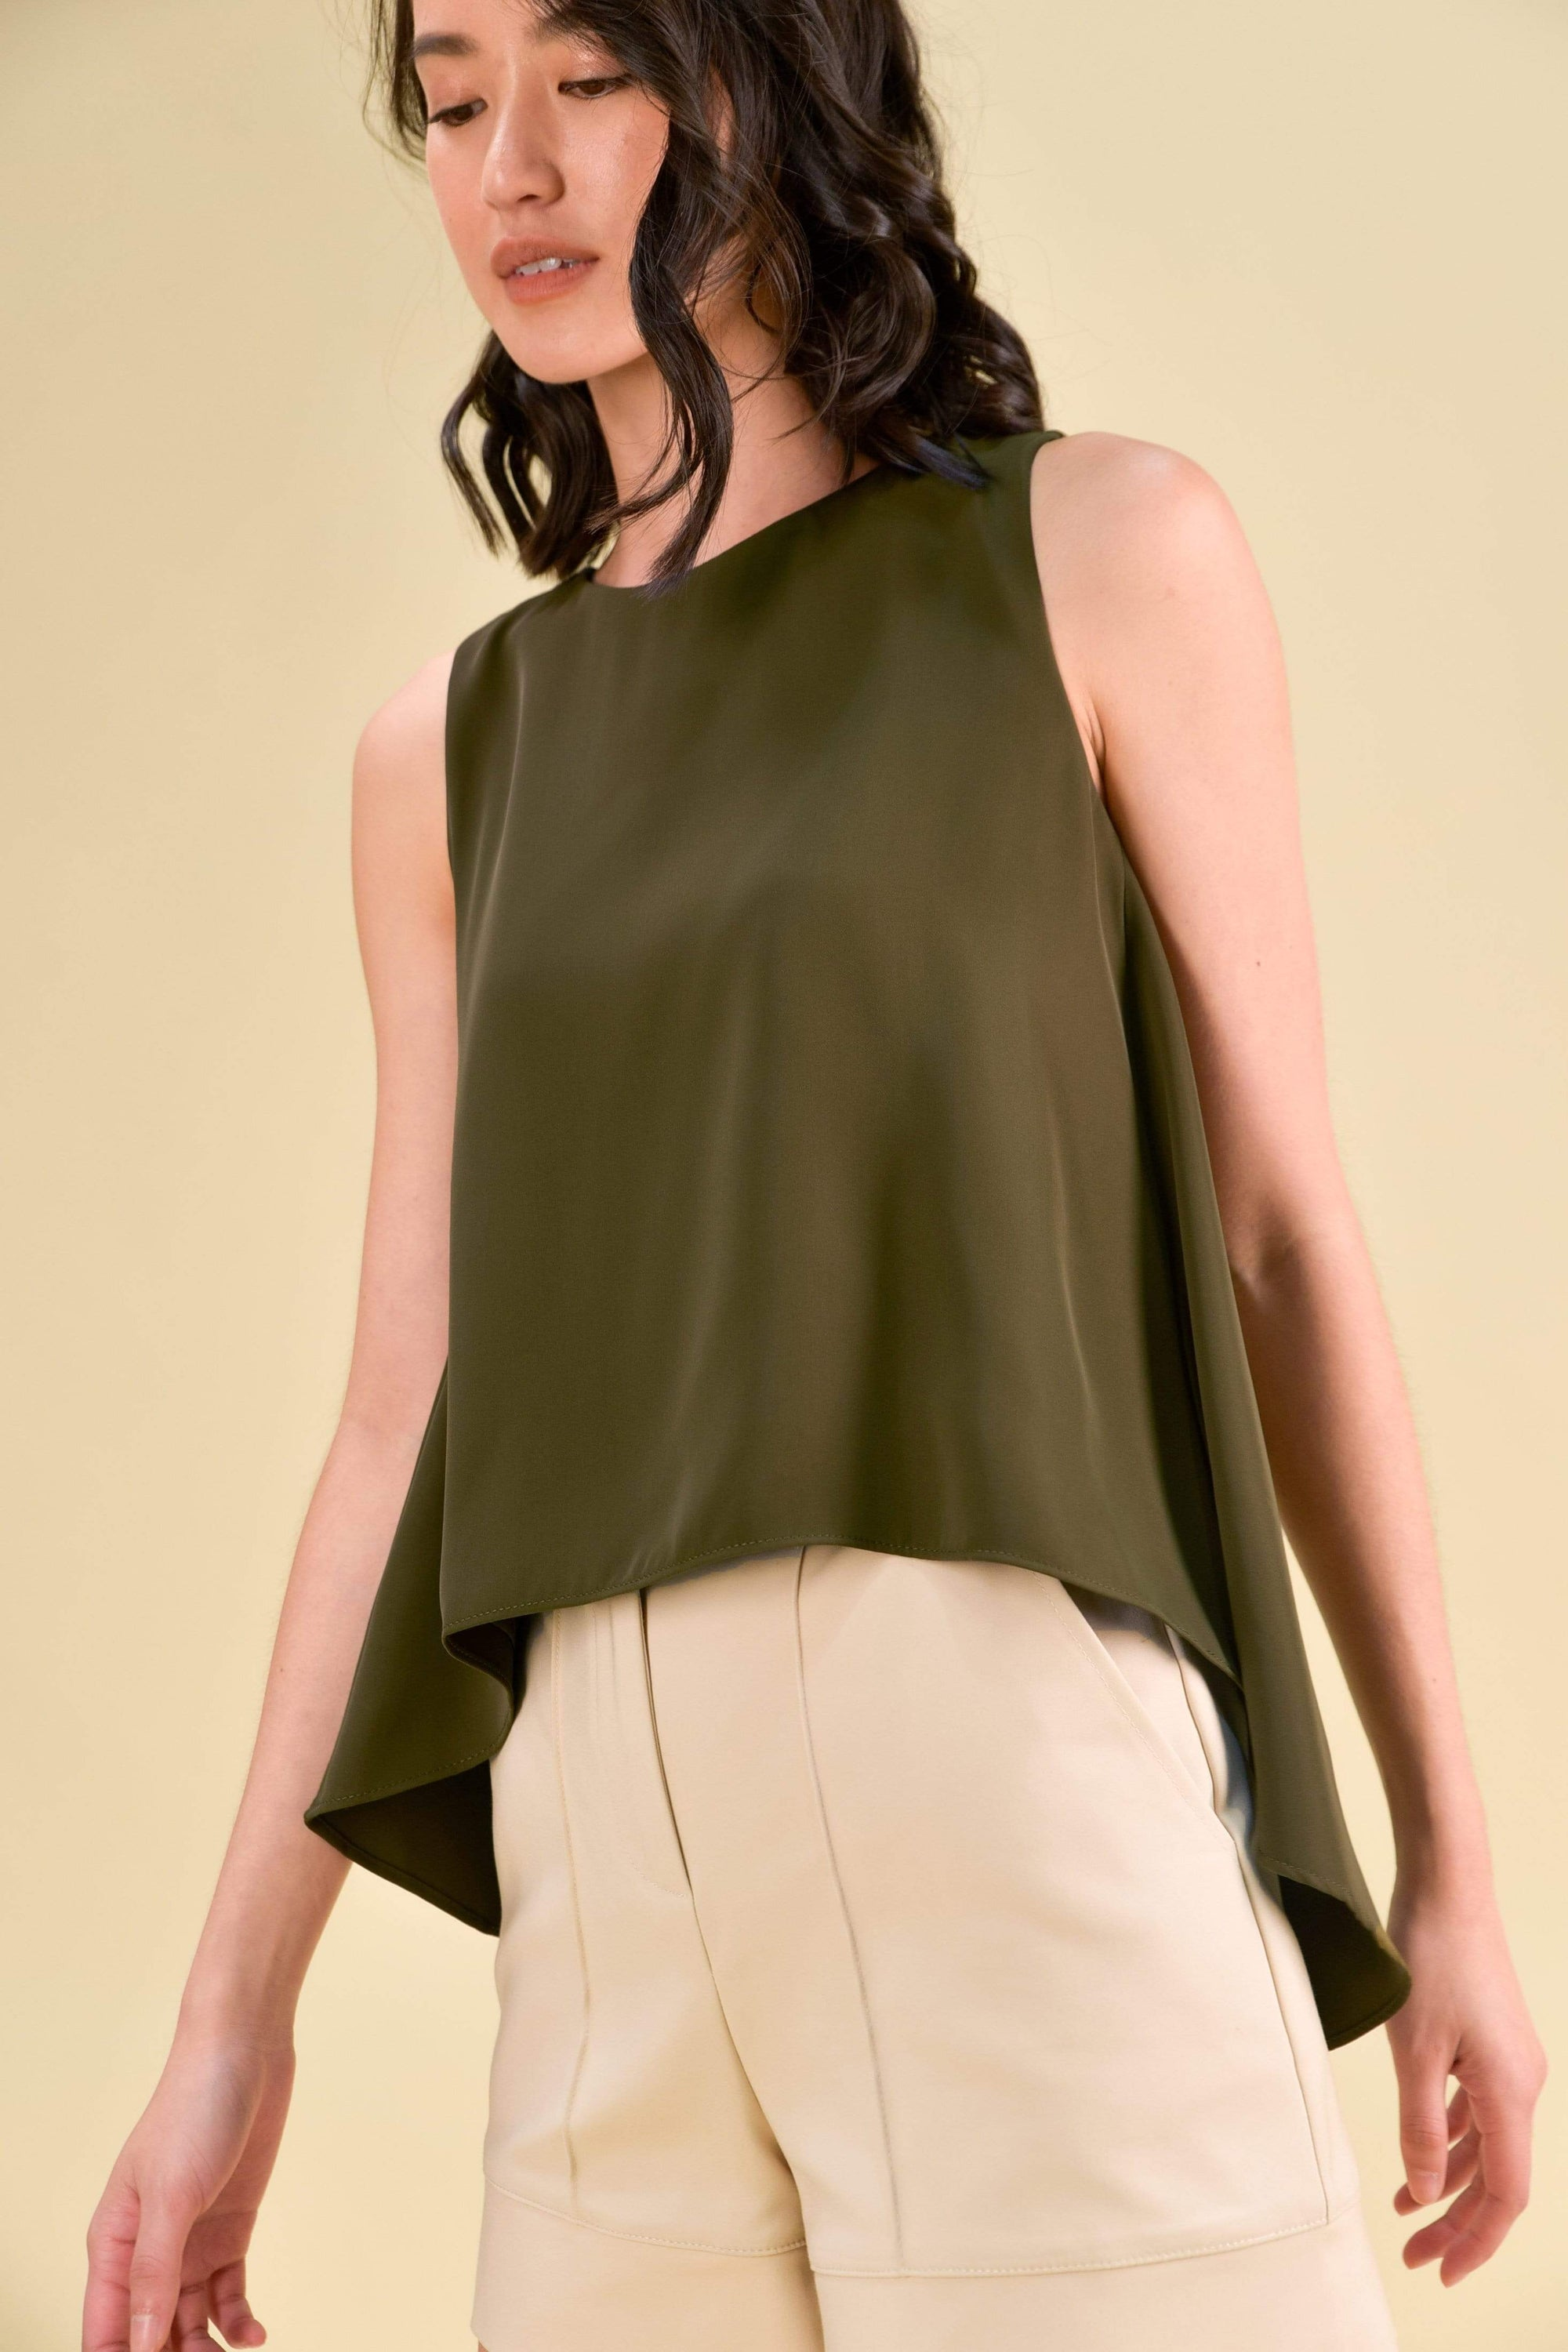 VONNE DIP HEM TOP IN OLIVE